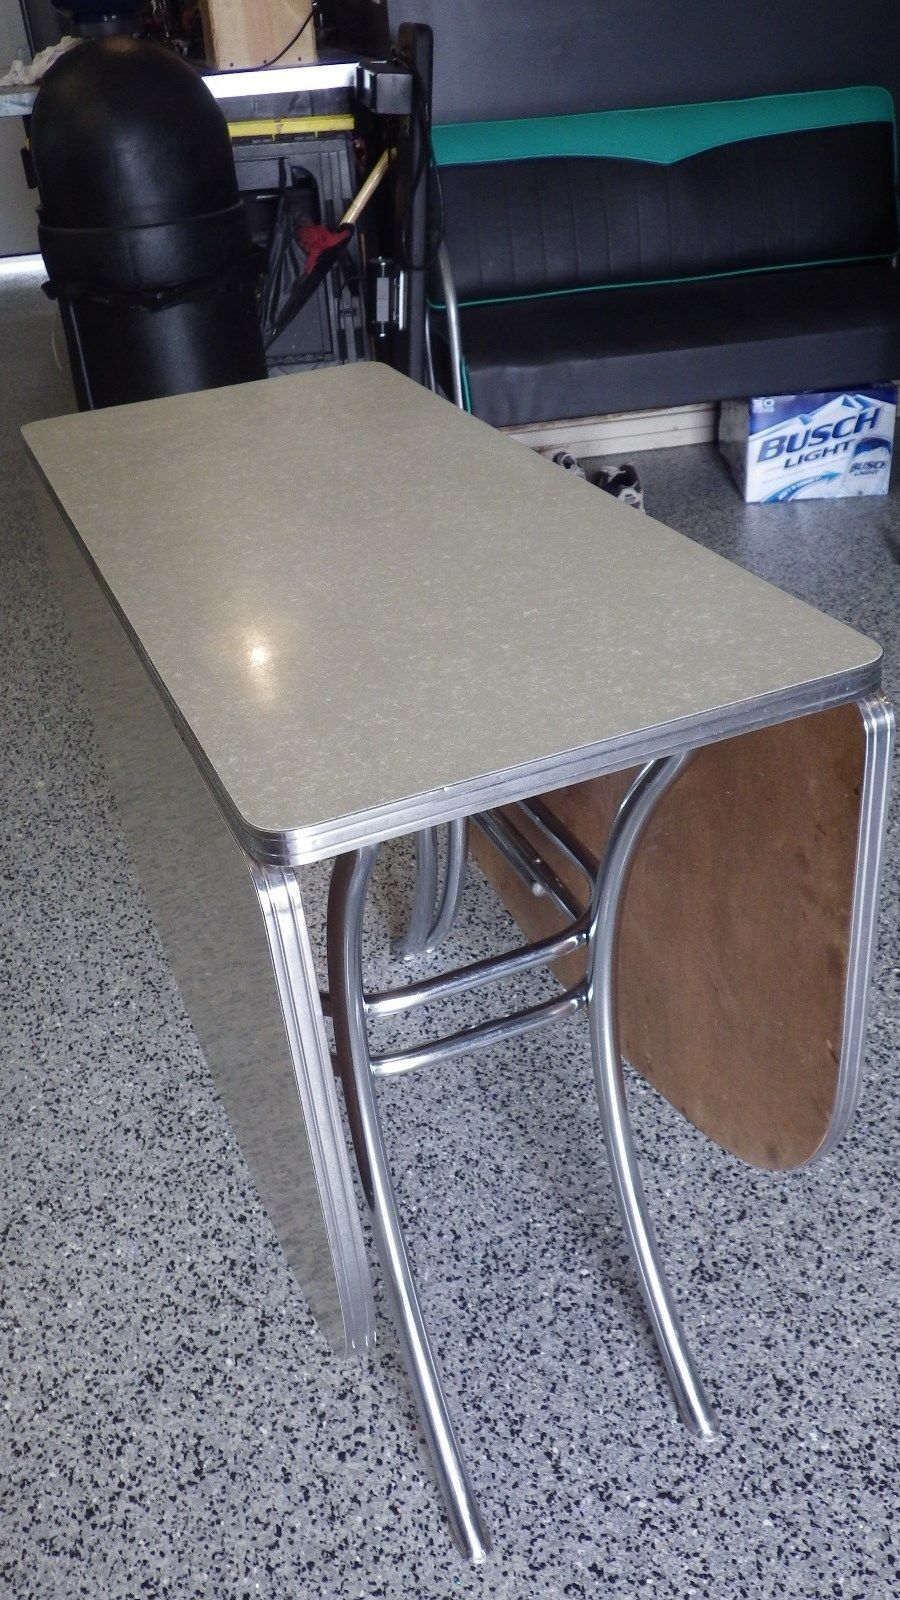 Vintage lloyd retro gray cracked ice formica chrome drop leaf vintage lloyd retro gray cracked ice formica chrome drop leaf kitchen table ebay workwithnaturefo